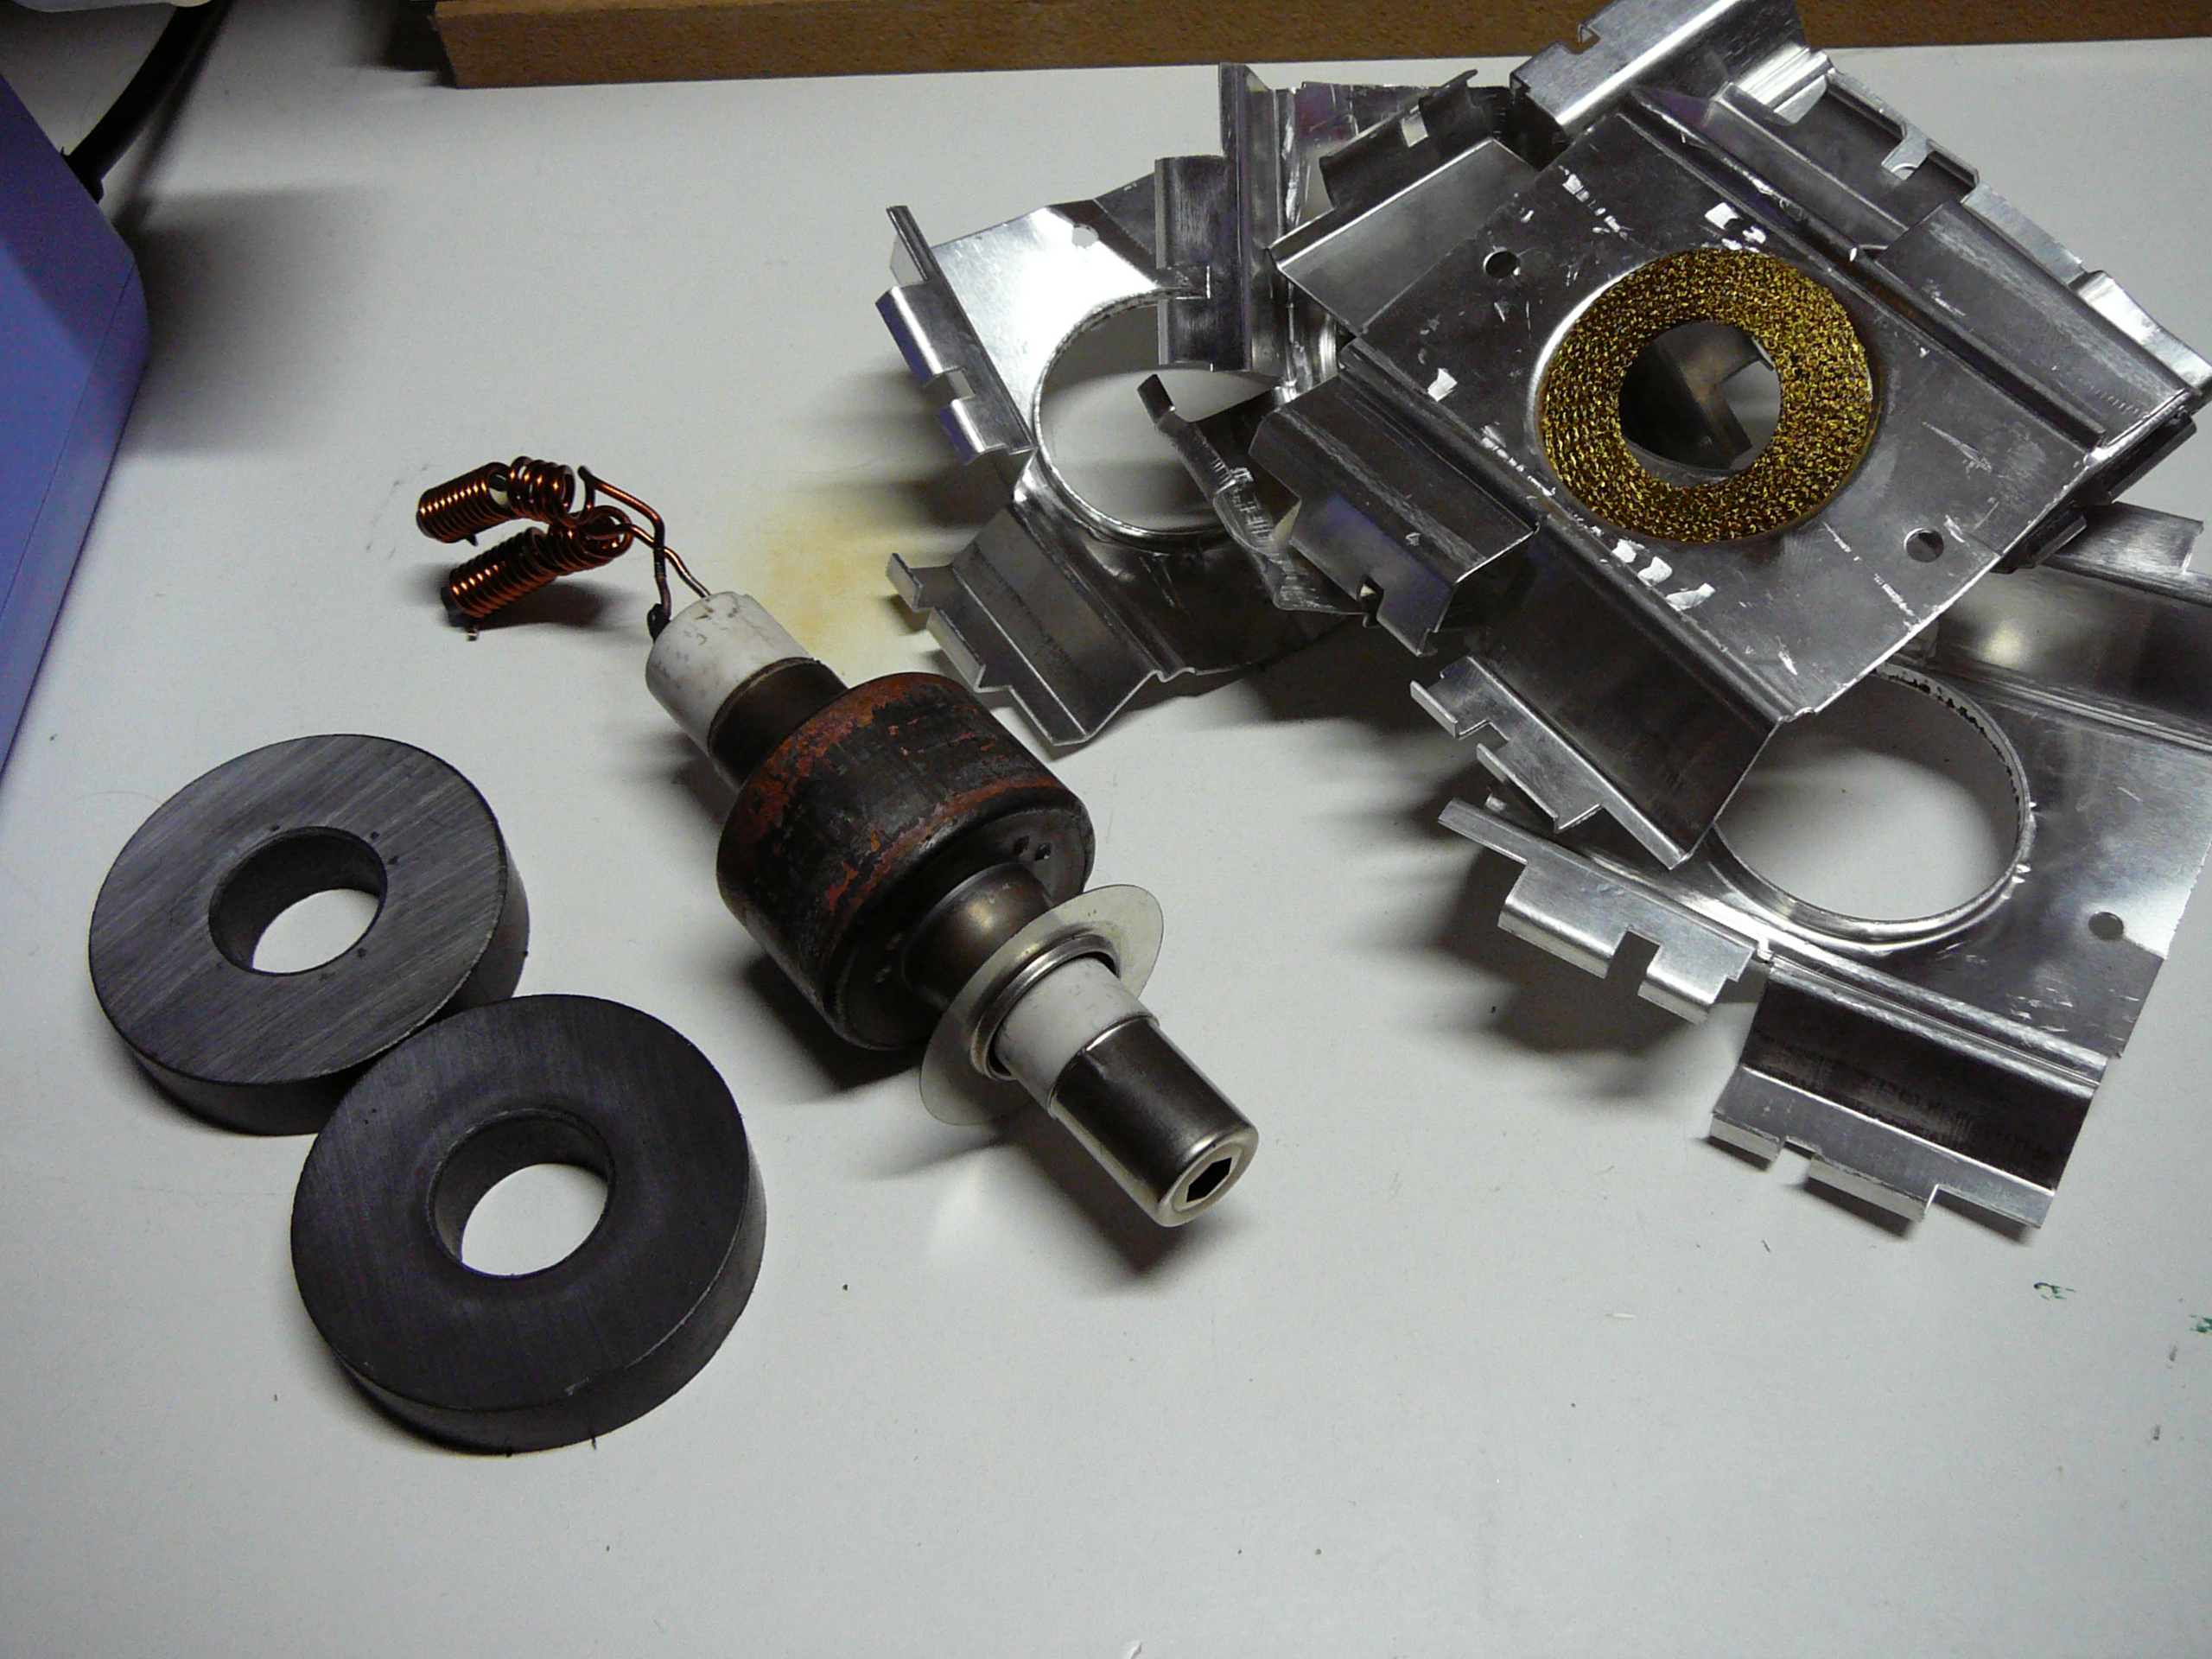 Picture of Parts, Components and Plans...